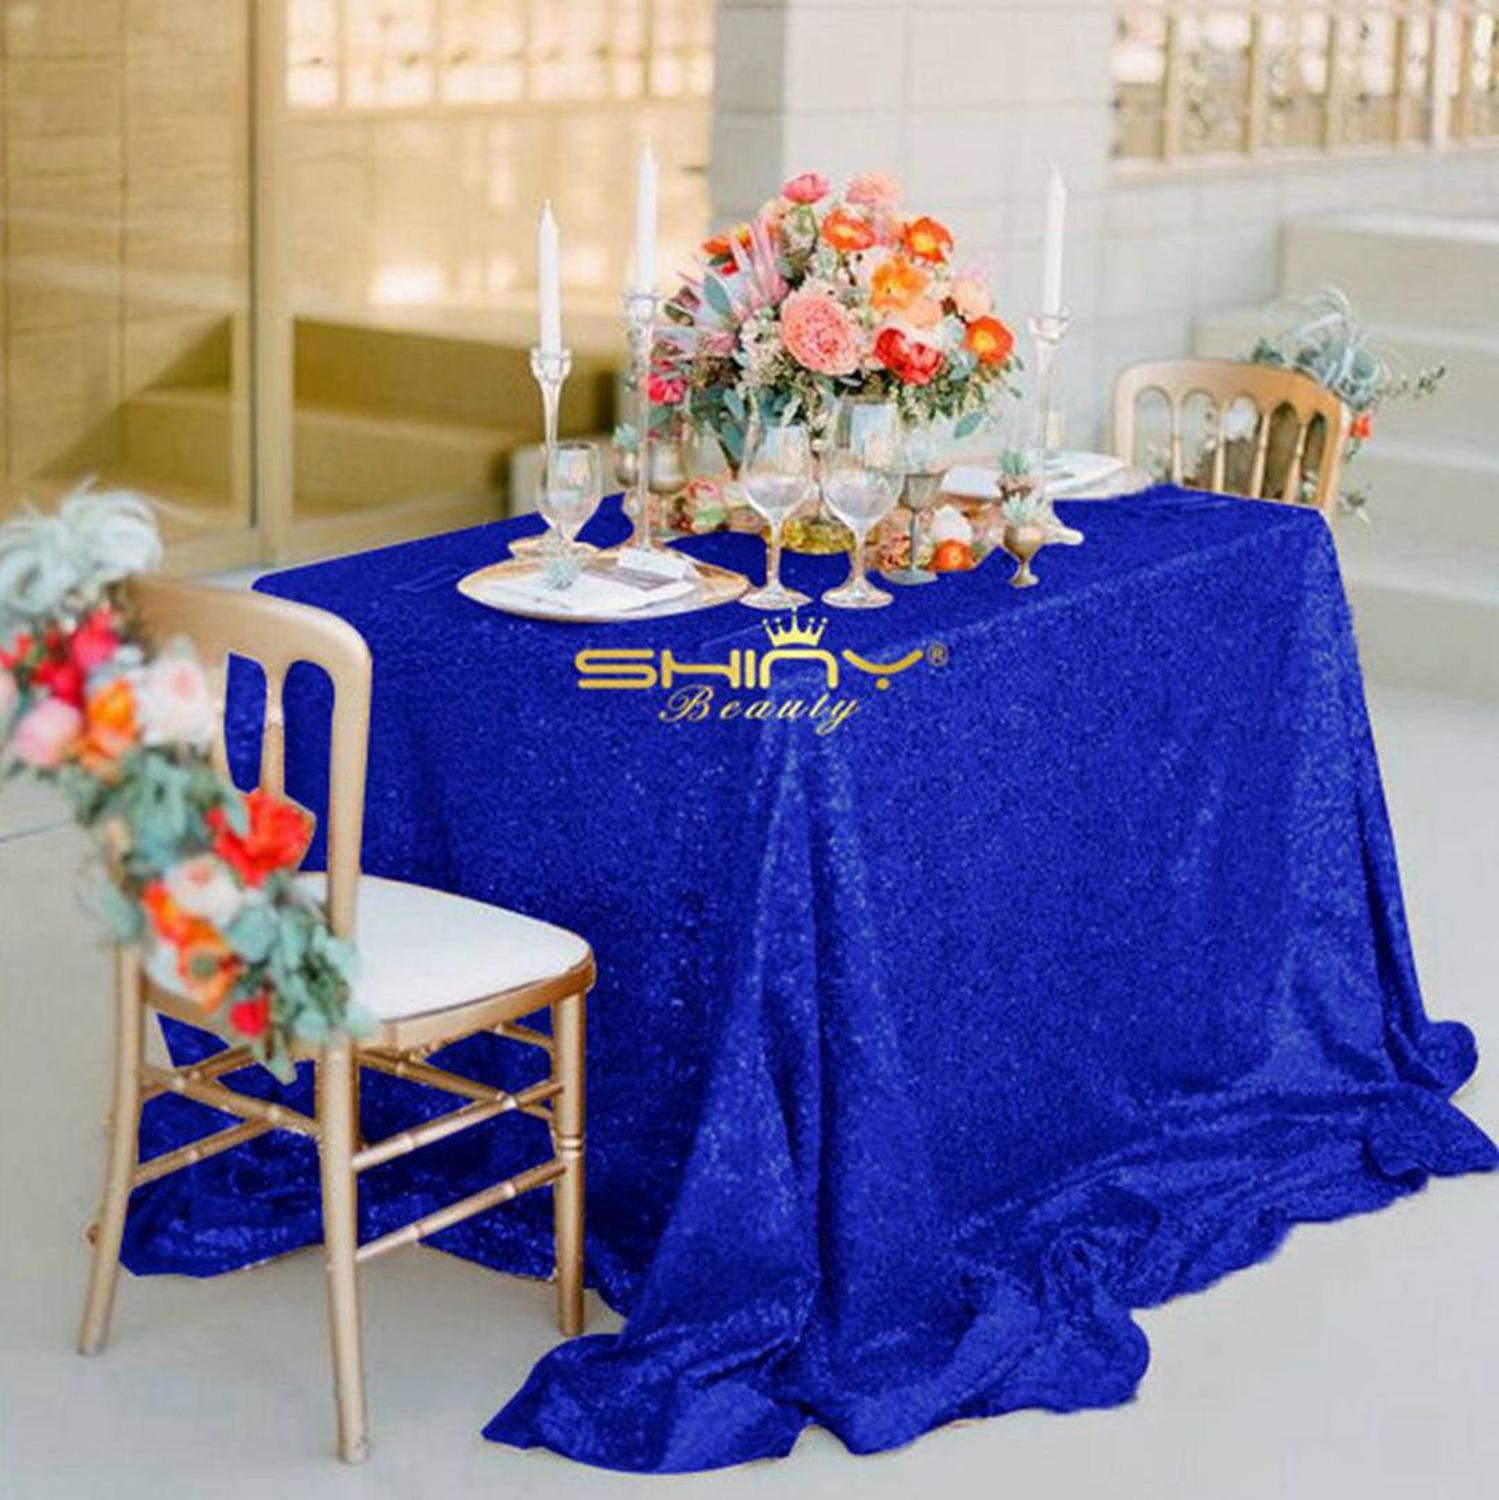 Rectangular Sequin Tablecloth 60x102-Inch Blue Sequin Table Cloth Royal Blue Tablecloths For Parties-M0928